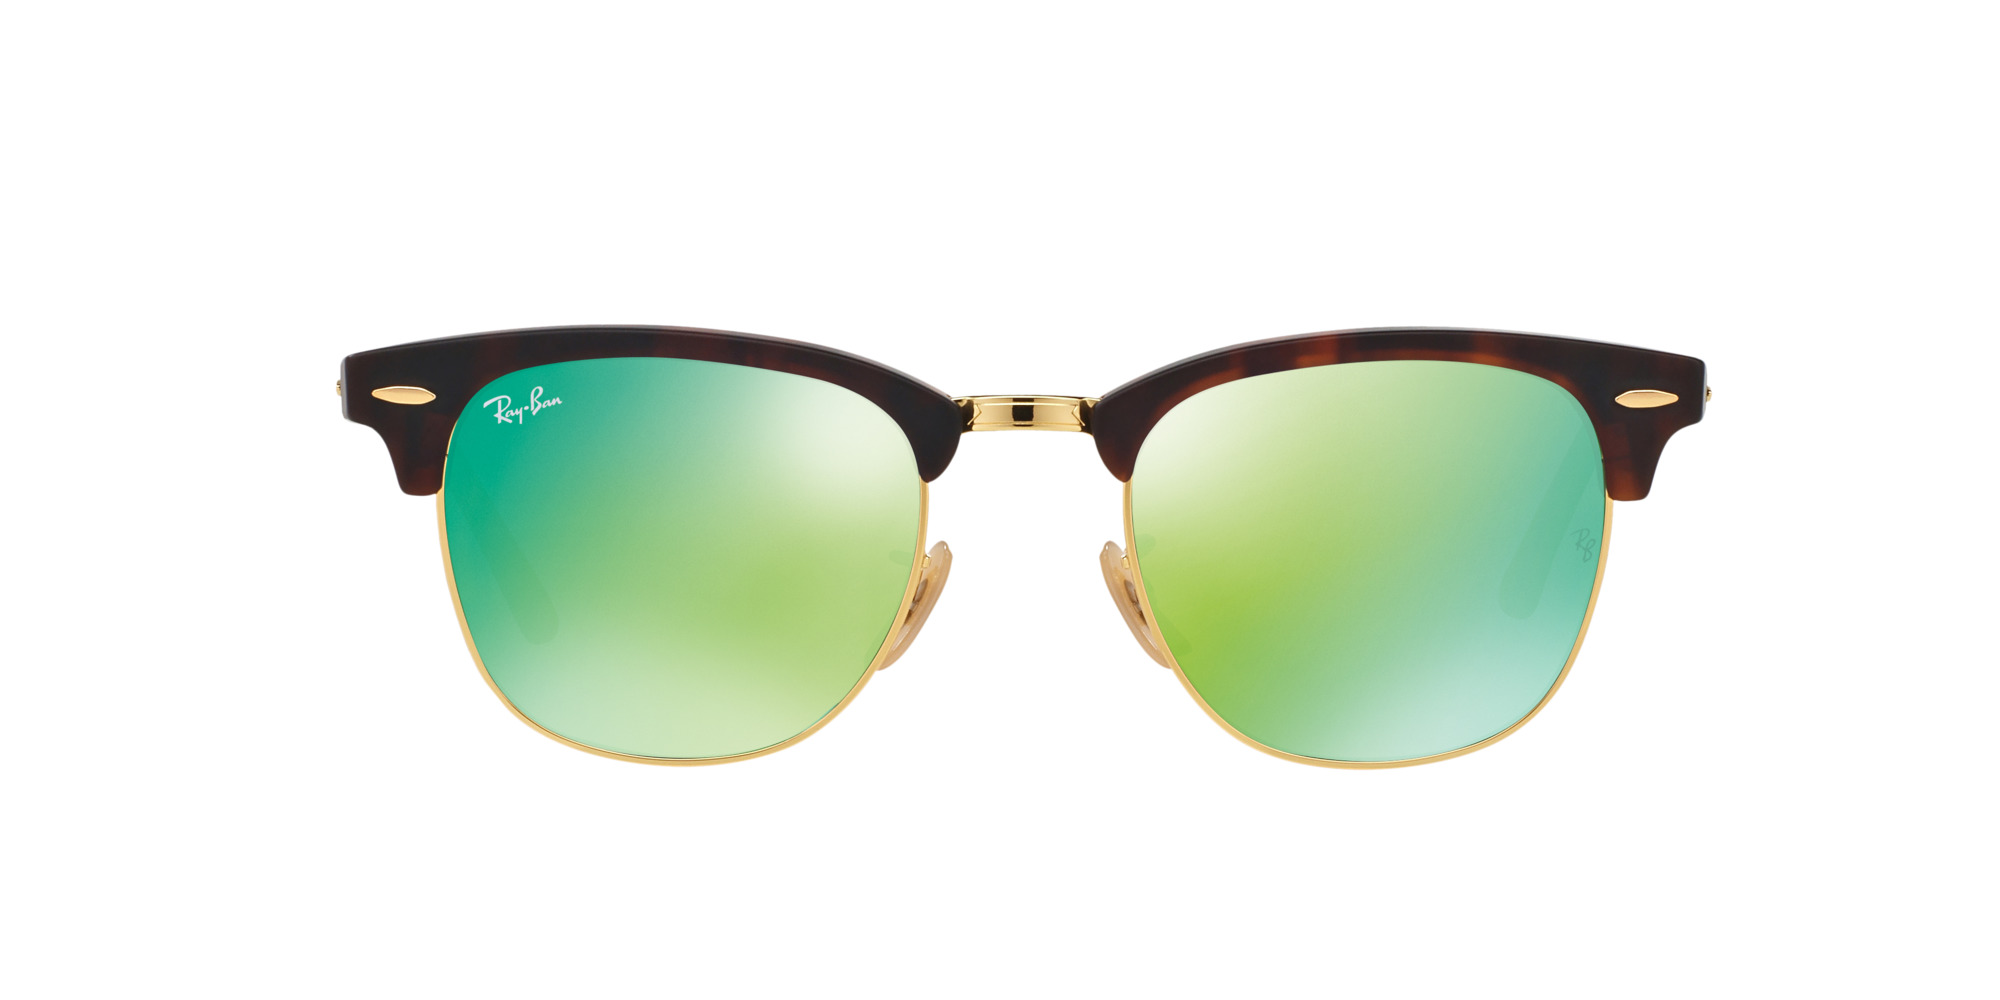 RAY-BAN CLUBMASTER RB 3016 114519 51mm.-360